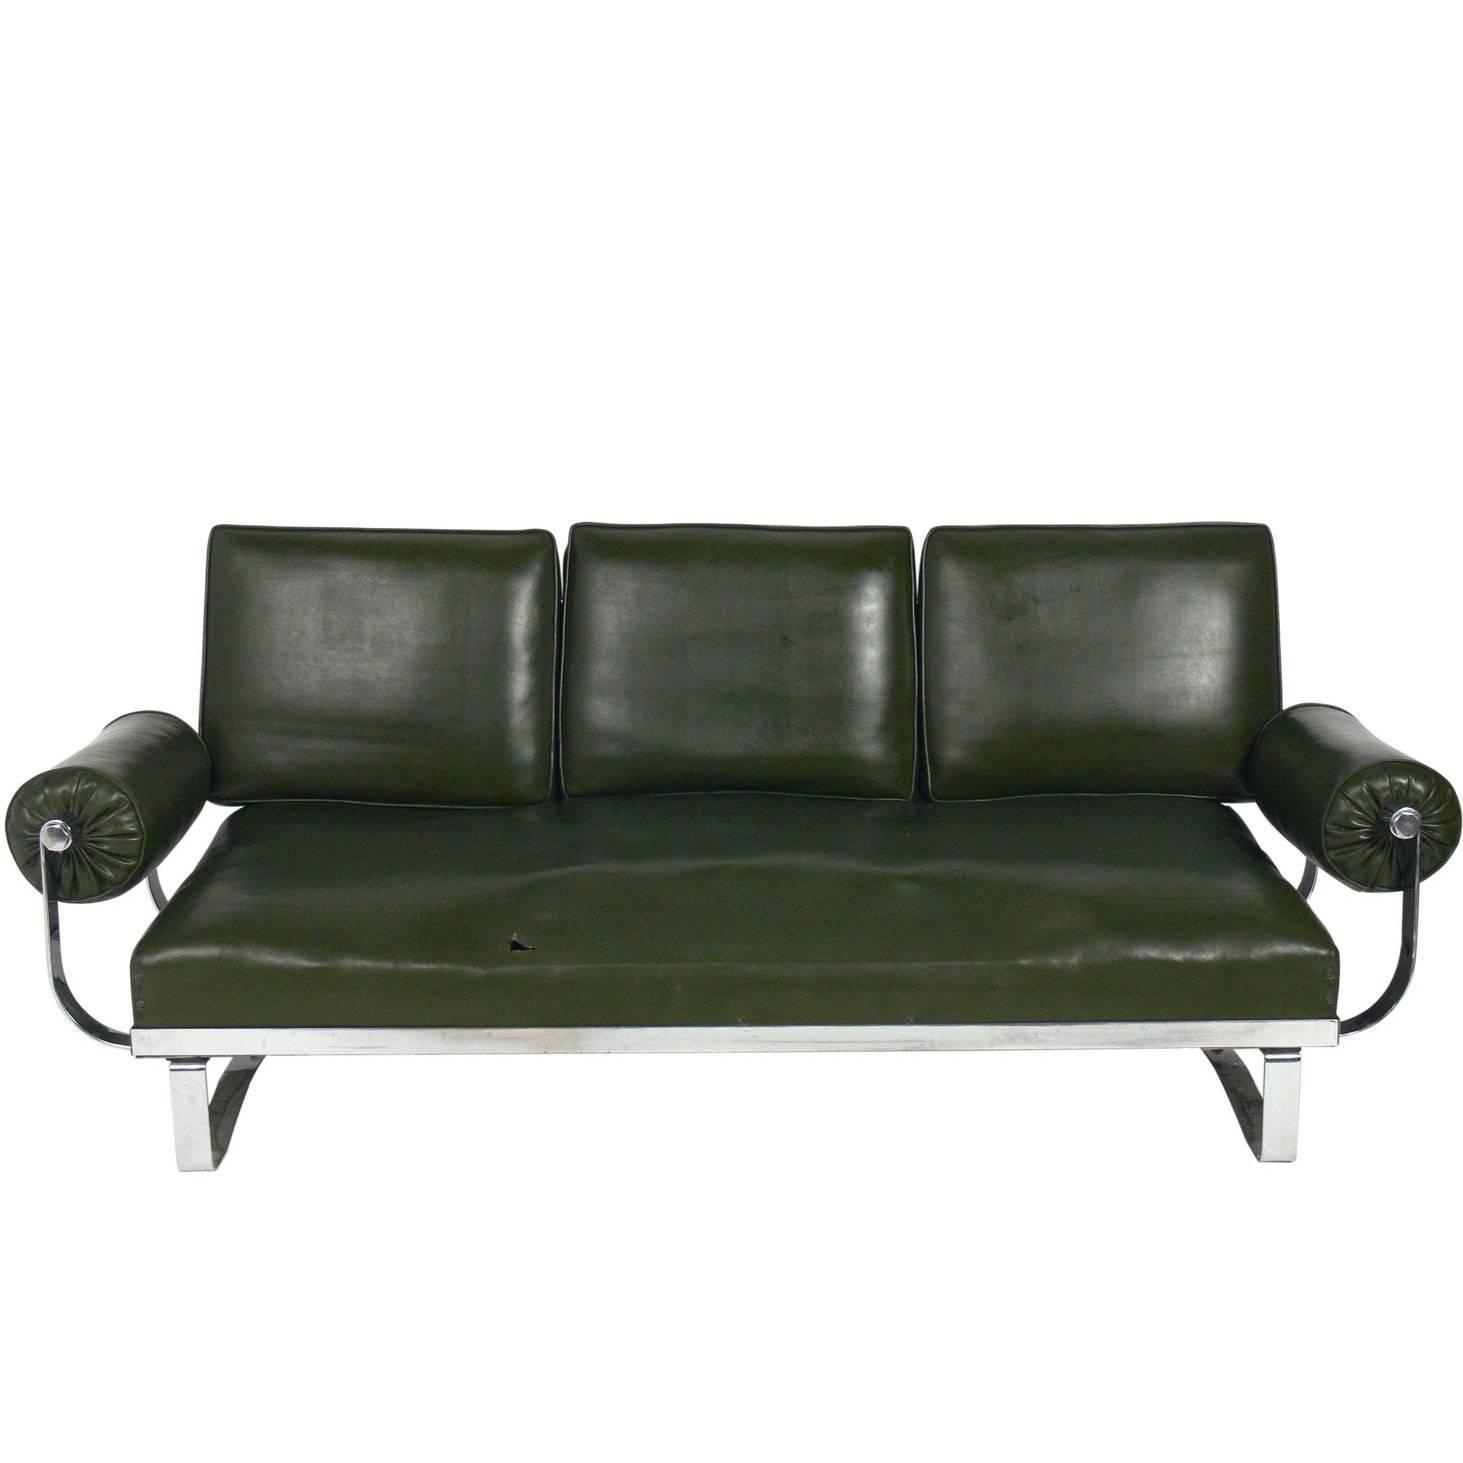 Fancy Art Deco Sofa 43 With Additional Modern Sofa Ideas With Art Intended For Art Deco Sofas (View 2 of 10)